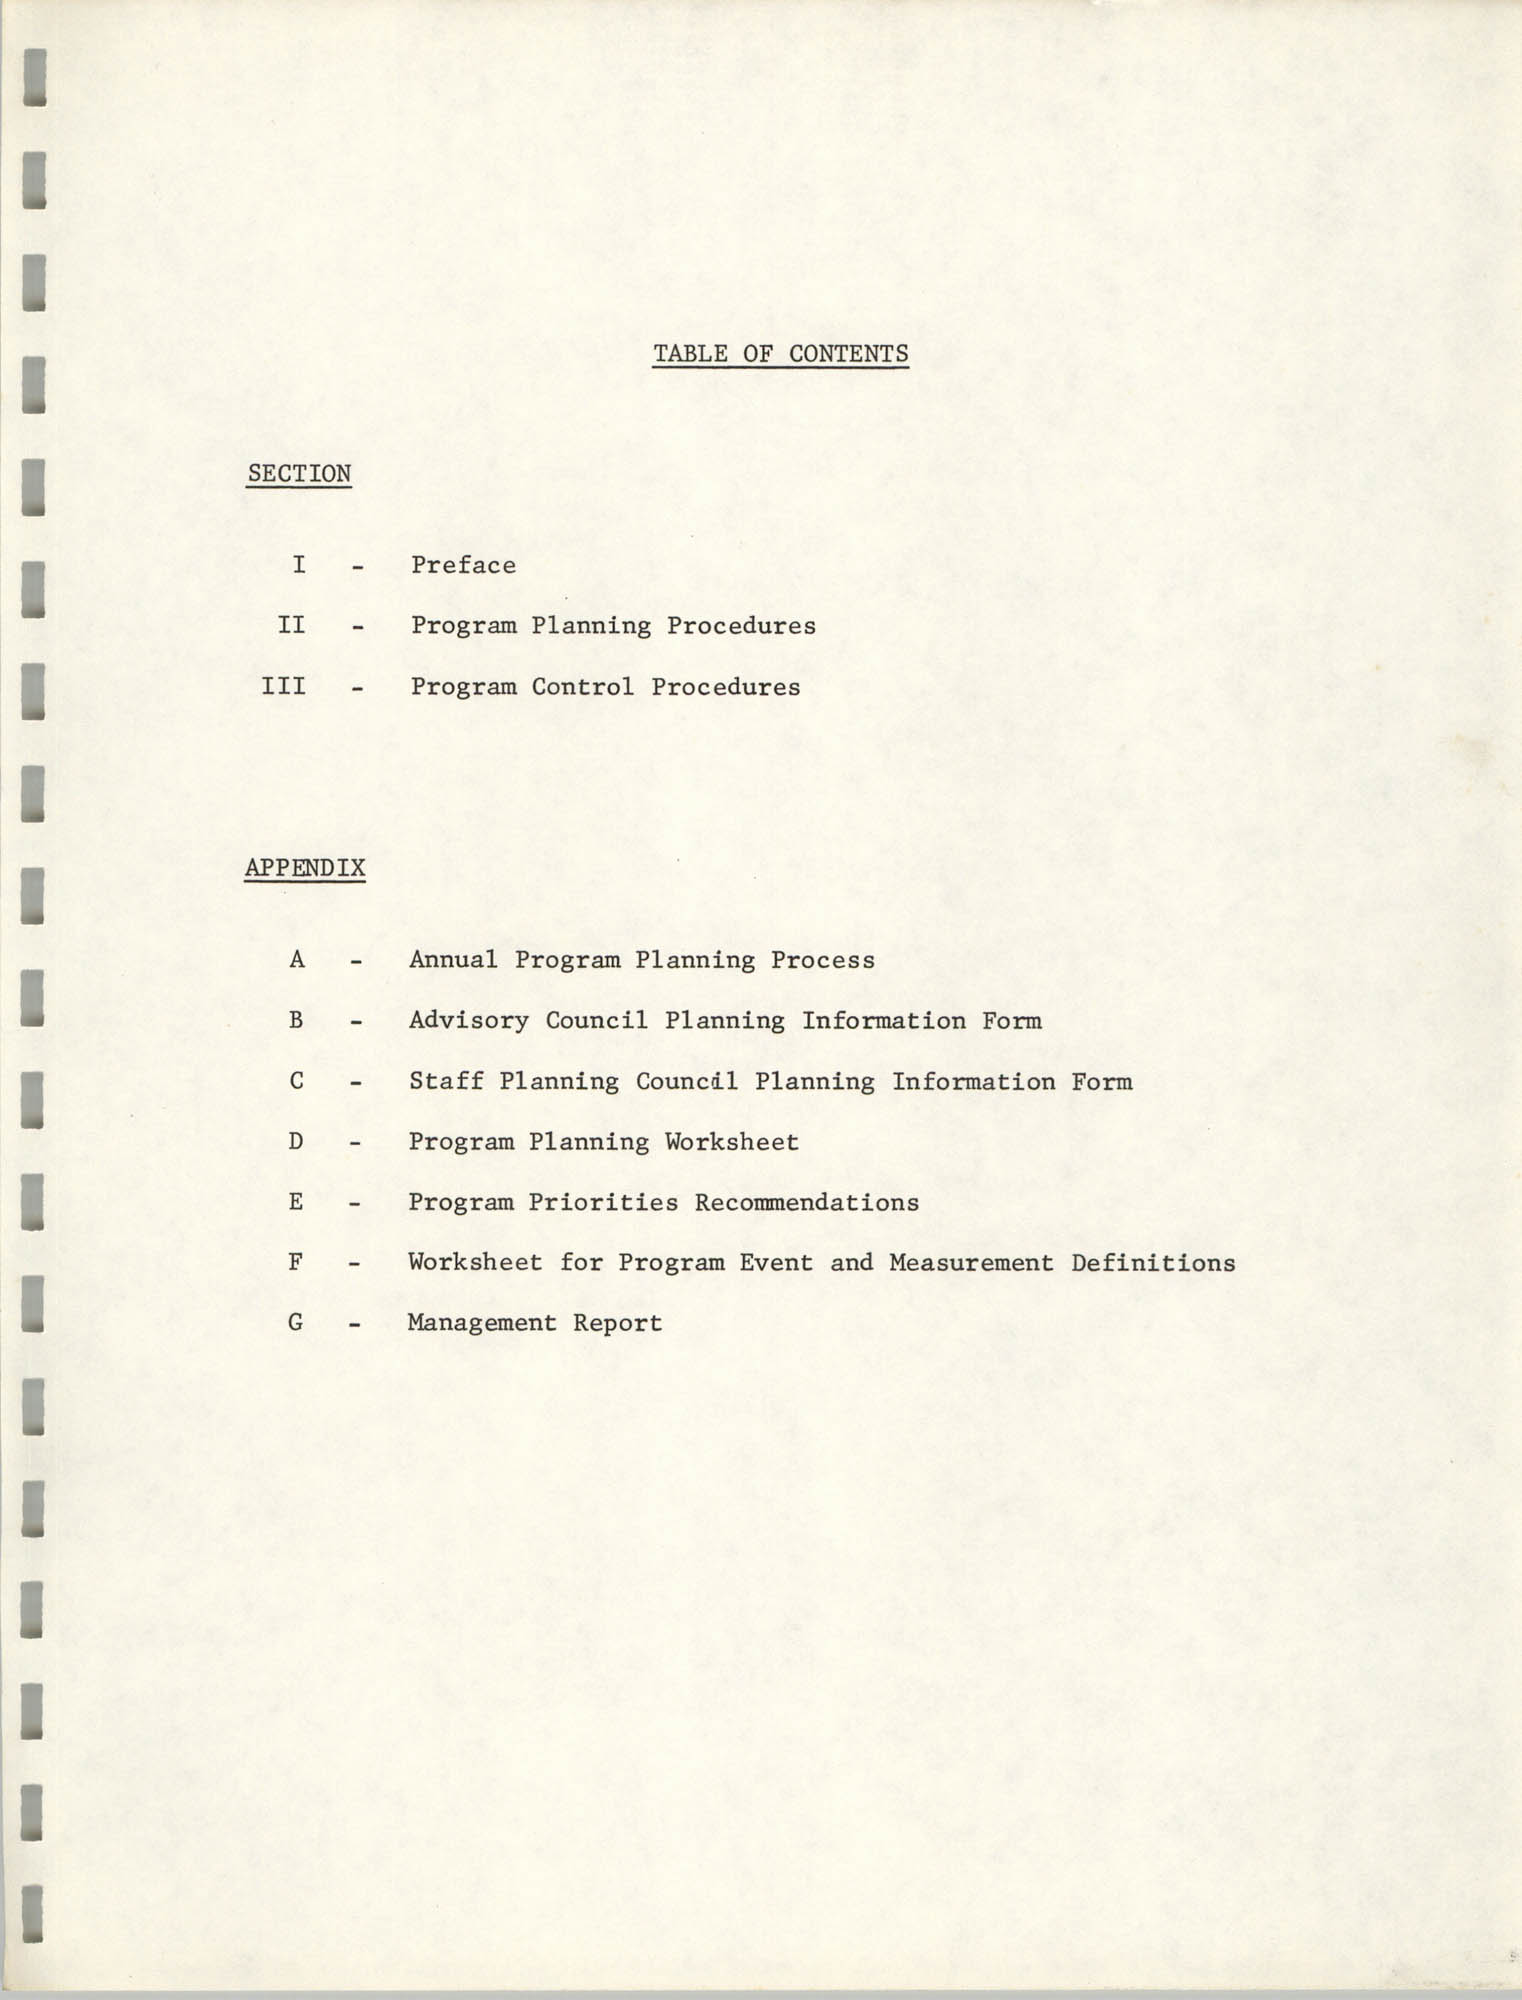 Program Planning and Control Procedures Guide for South Carolina Commission for Farm Workers, Inc., Table of Contents